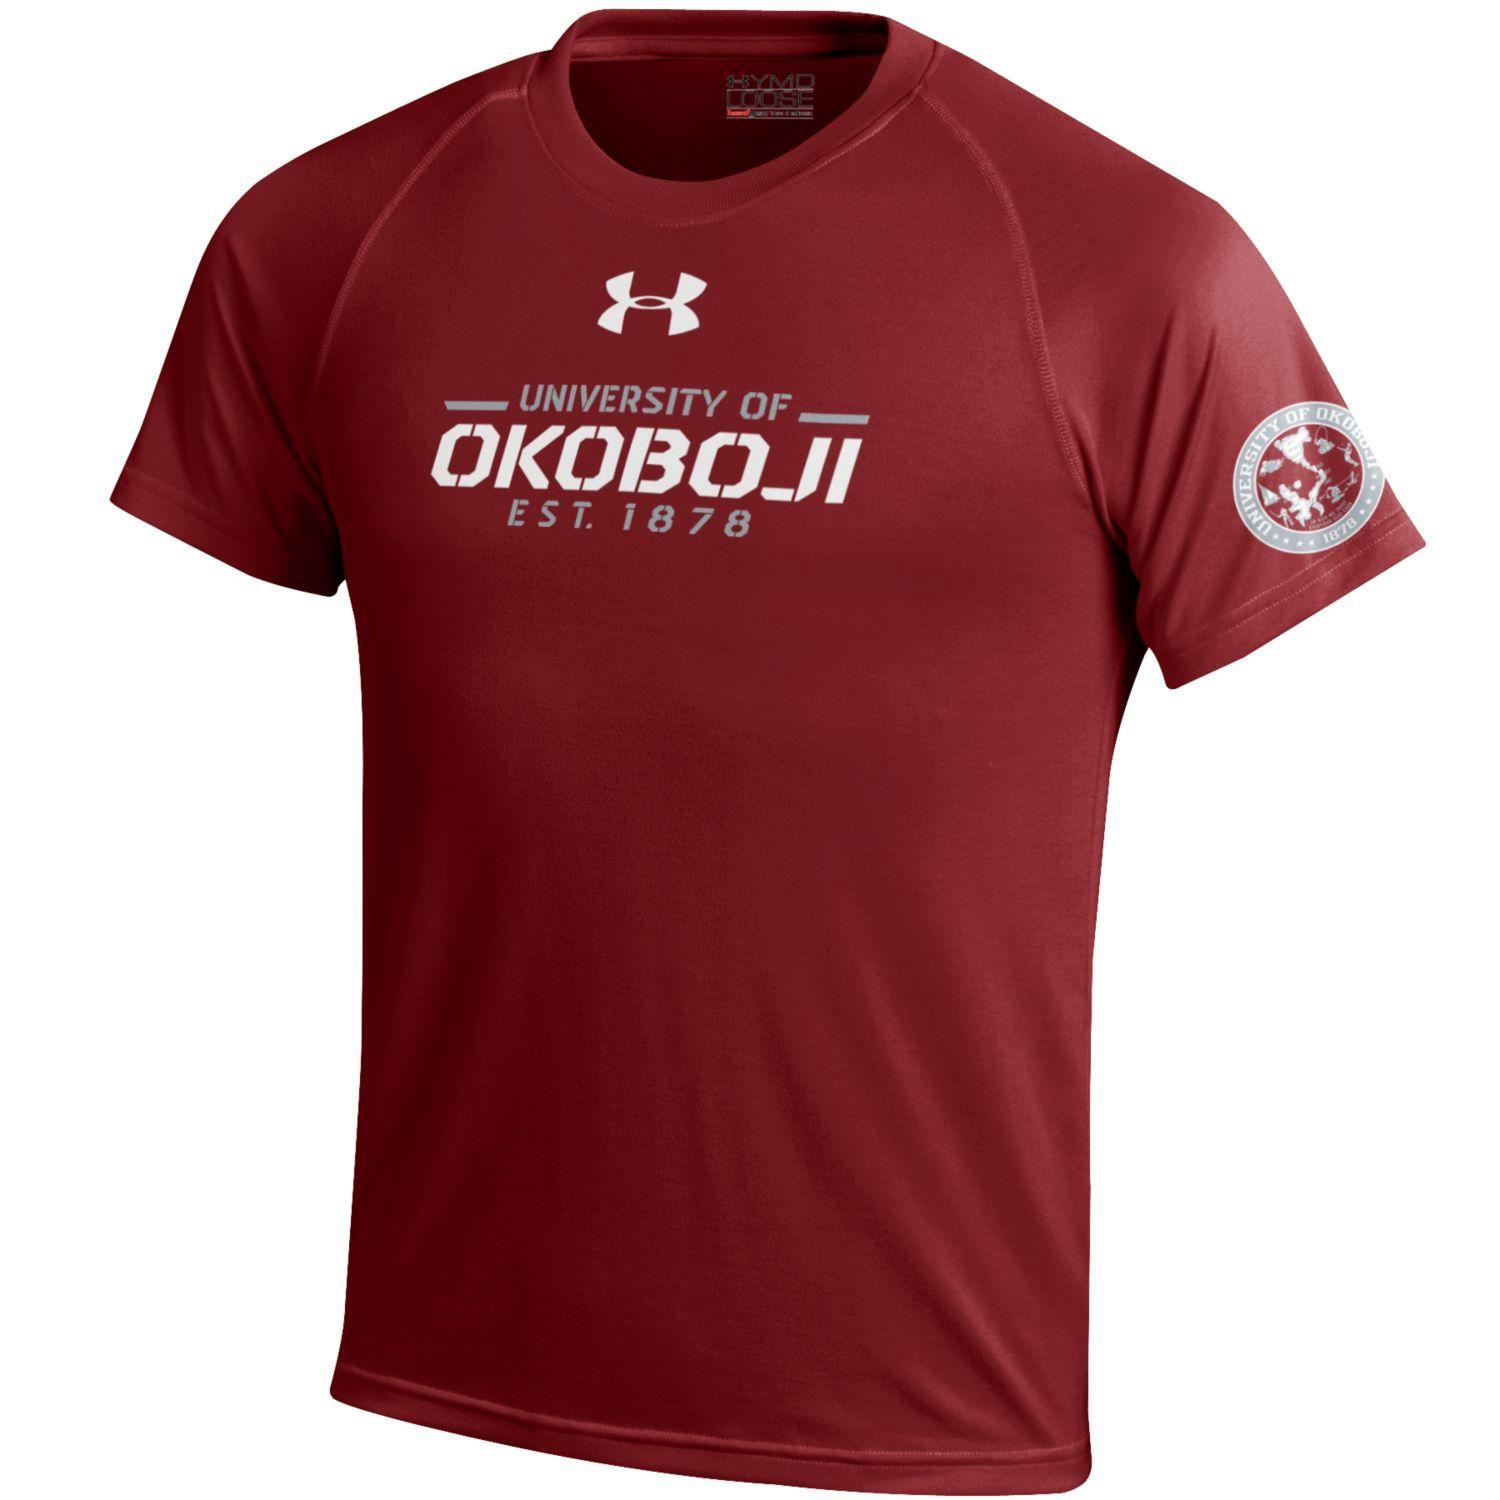 University of Okoboji Under Armour Maroon Youth Performance Tee